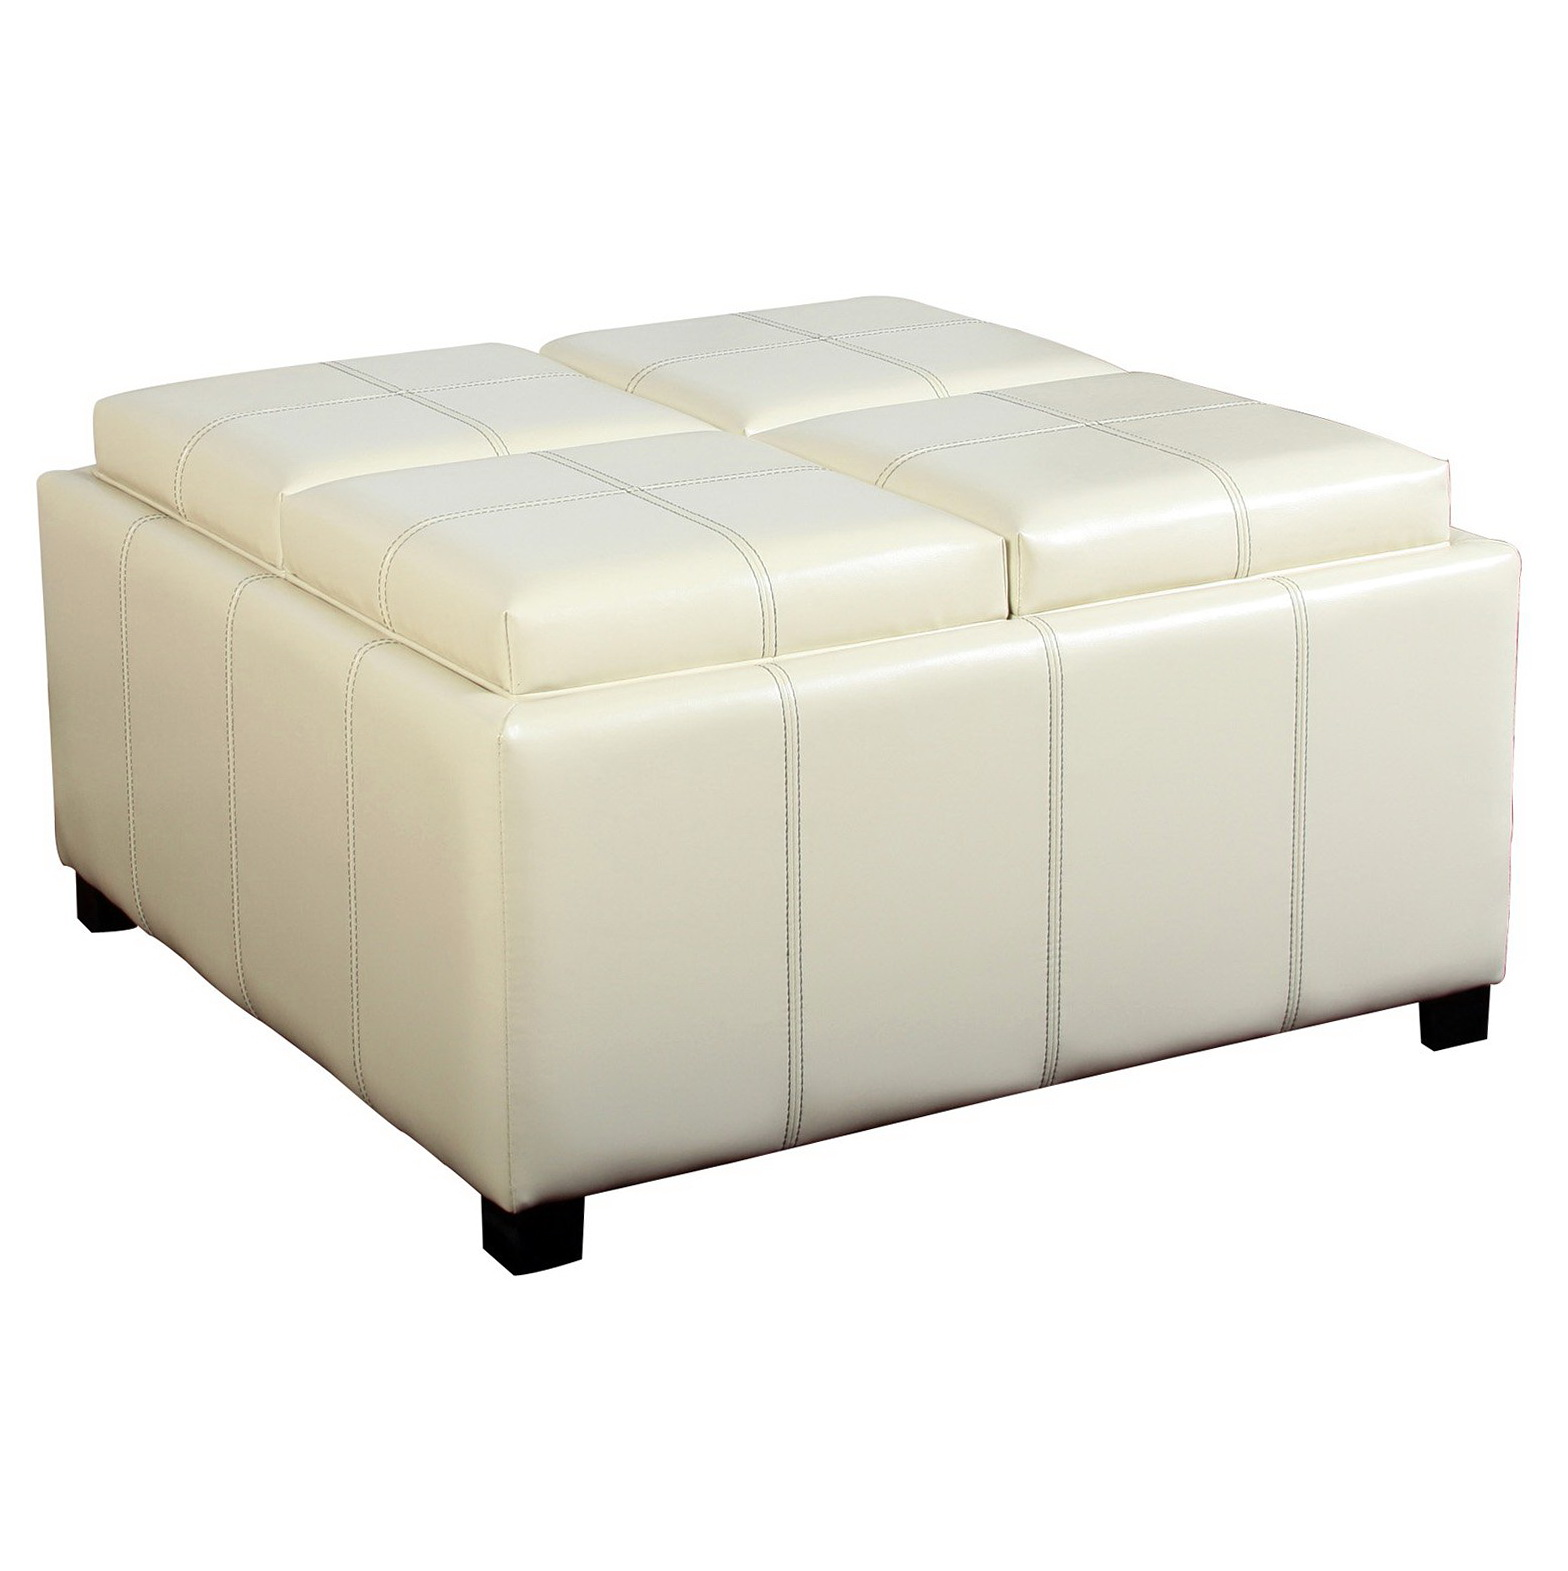 White Leather Ottoman Coffee Table Home Design Ideas